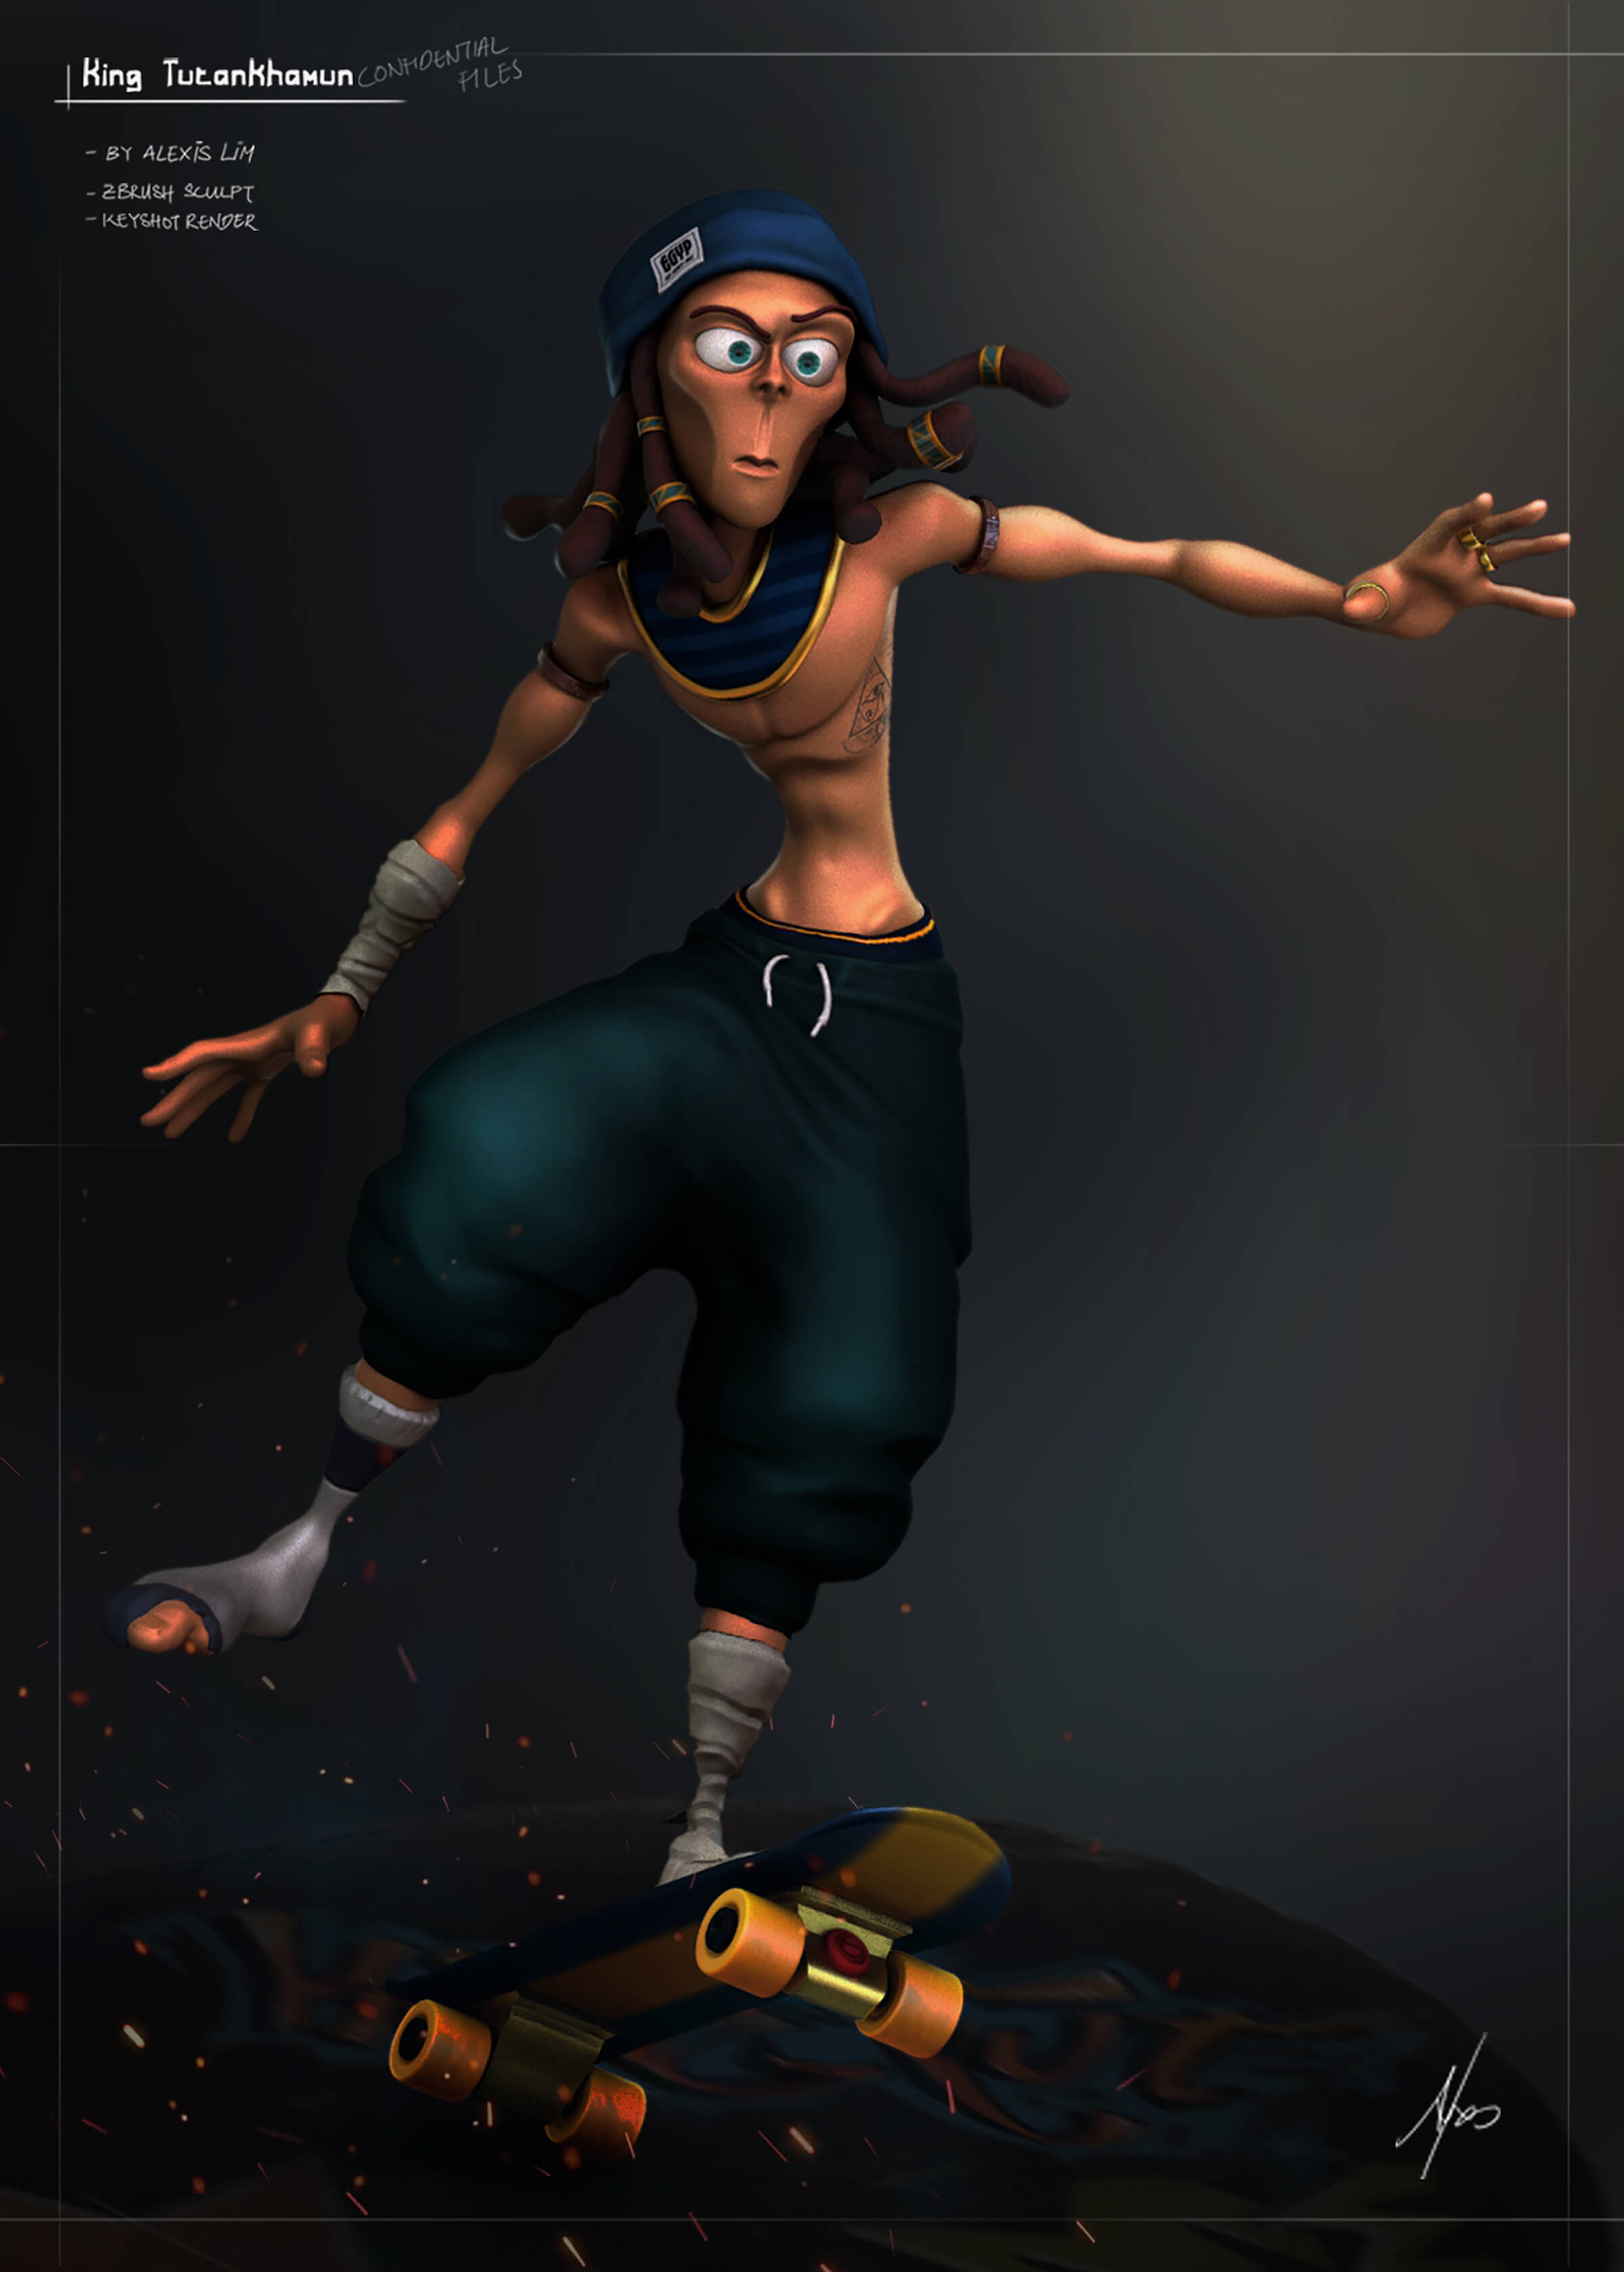 King Tut as a skateboarder with sweatpants and dreadlocks